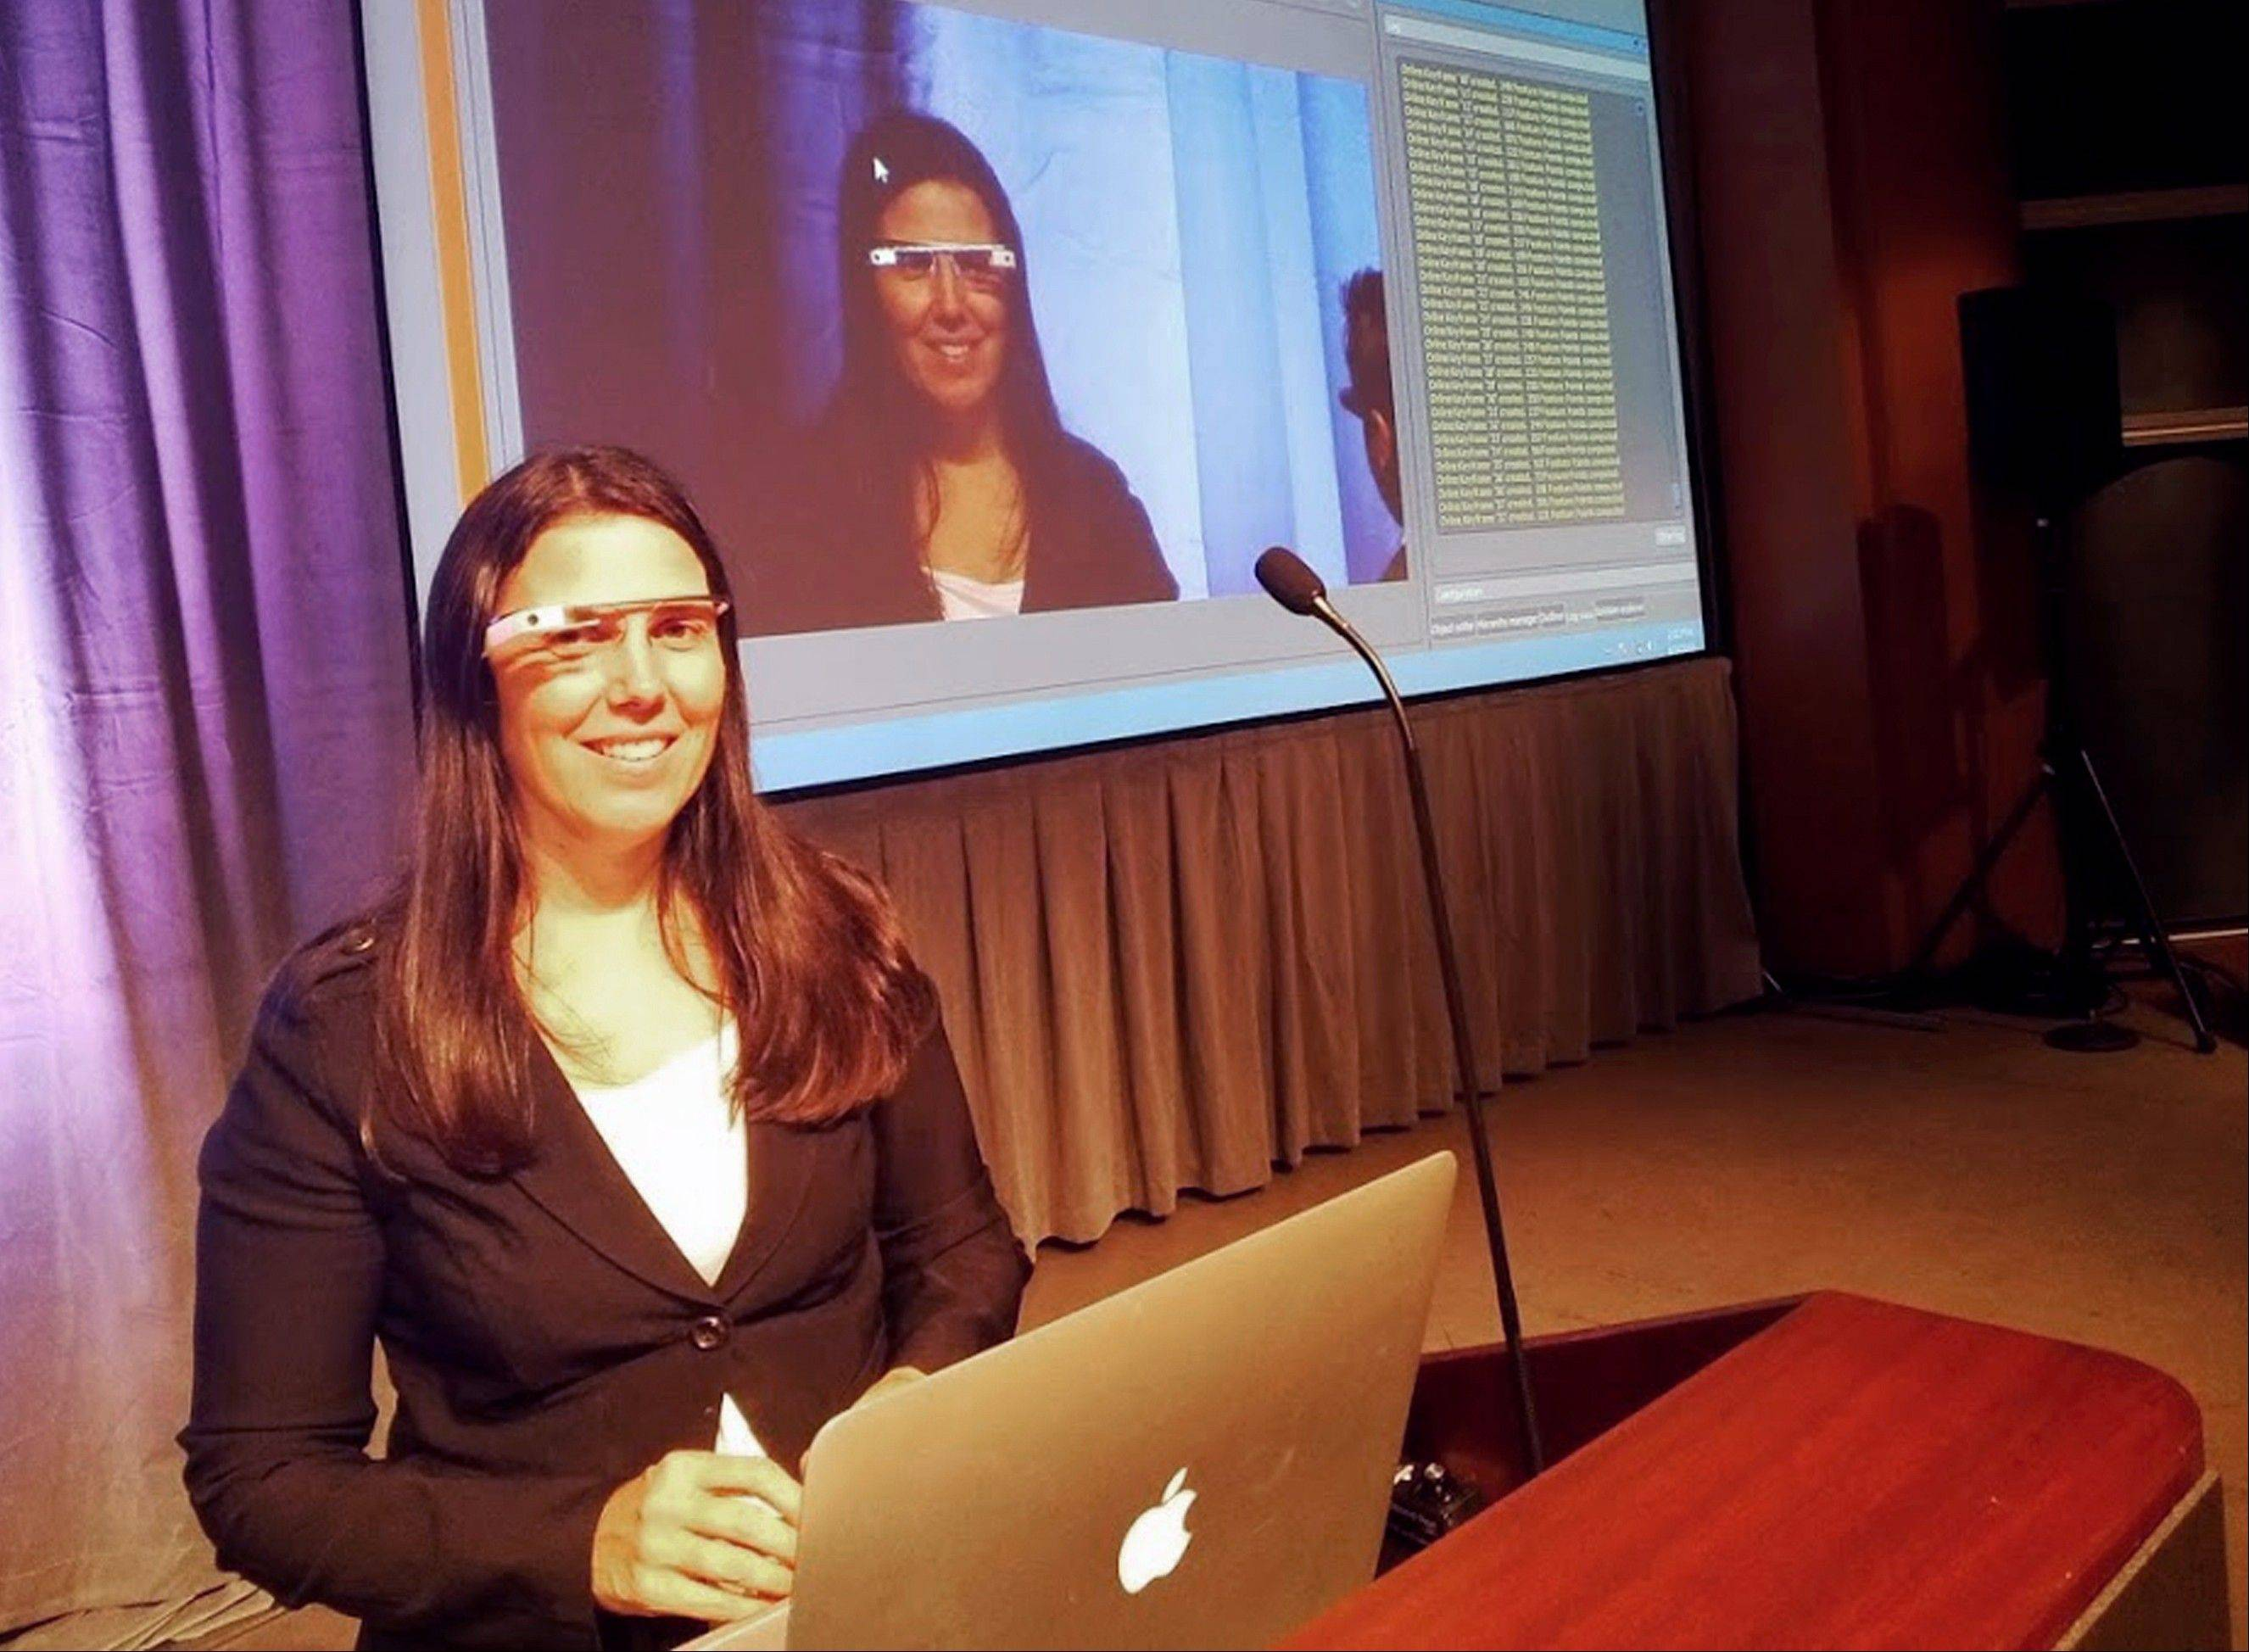 This undated photo released courtesy Cecilia Abadie shows Cecilia Abadie a software developer from Temecula, Calif., during a presentation. Abadie was pulled over for speeding on Tuesday Oct. 29, 2013, in San Diego, when a California Highway Patrol officer noticed she was wearing Google Glass and tacked on a citation usually given to drivers who may be distracted by a video or TV screen.